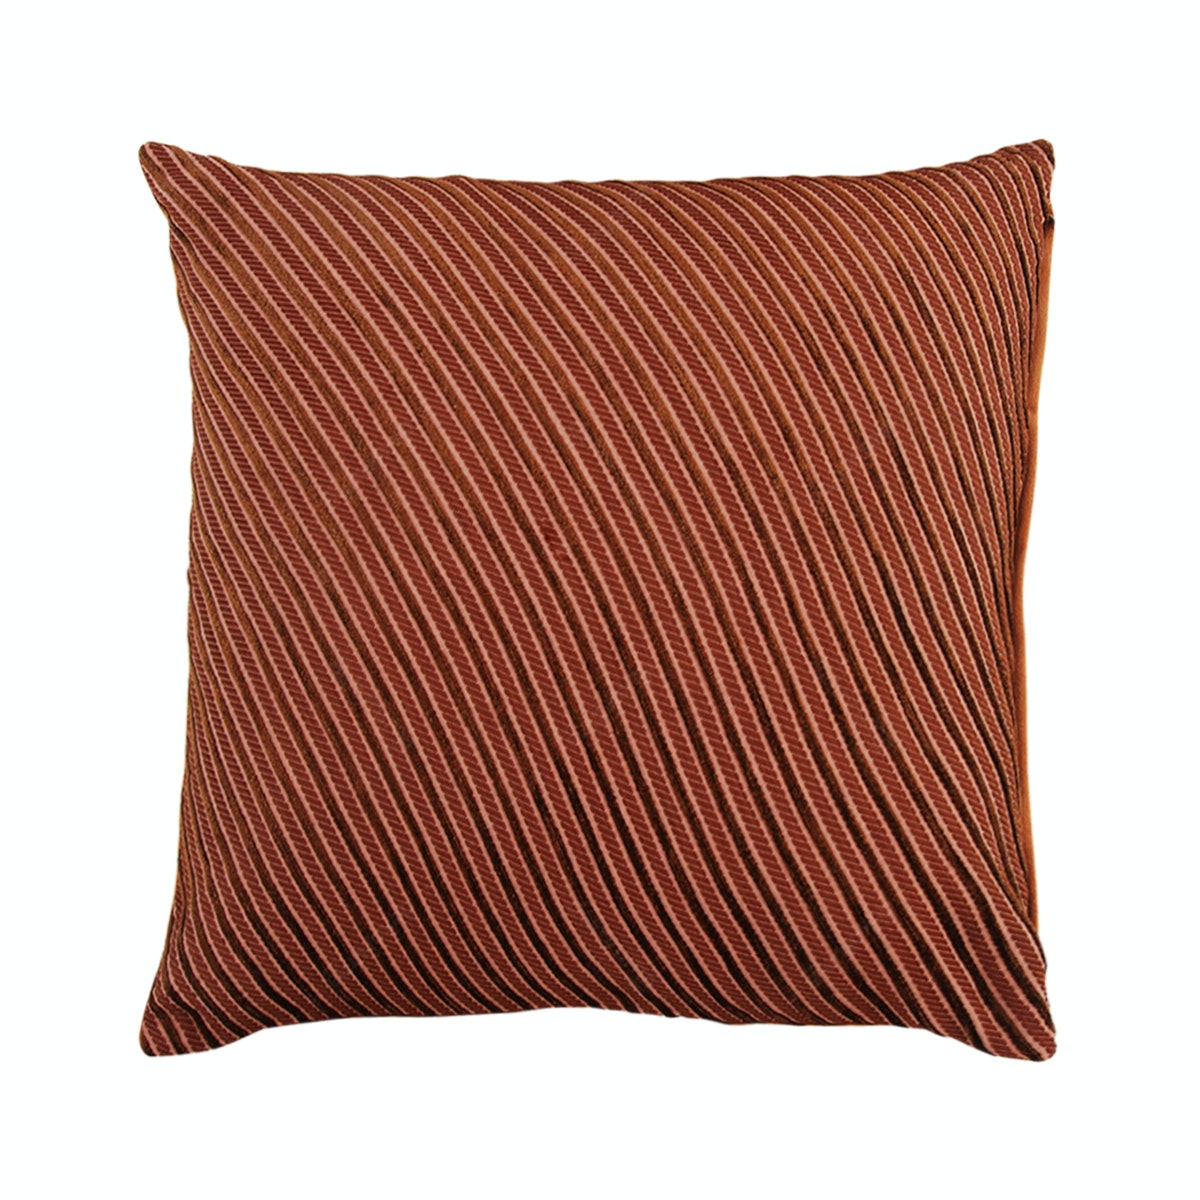 Le Atelier Mischa Brown Cushion Cover 45x45cm